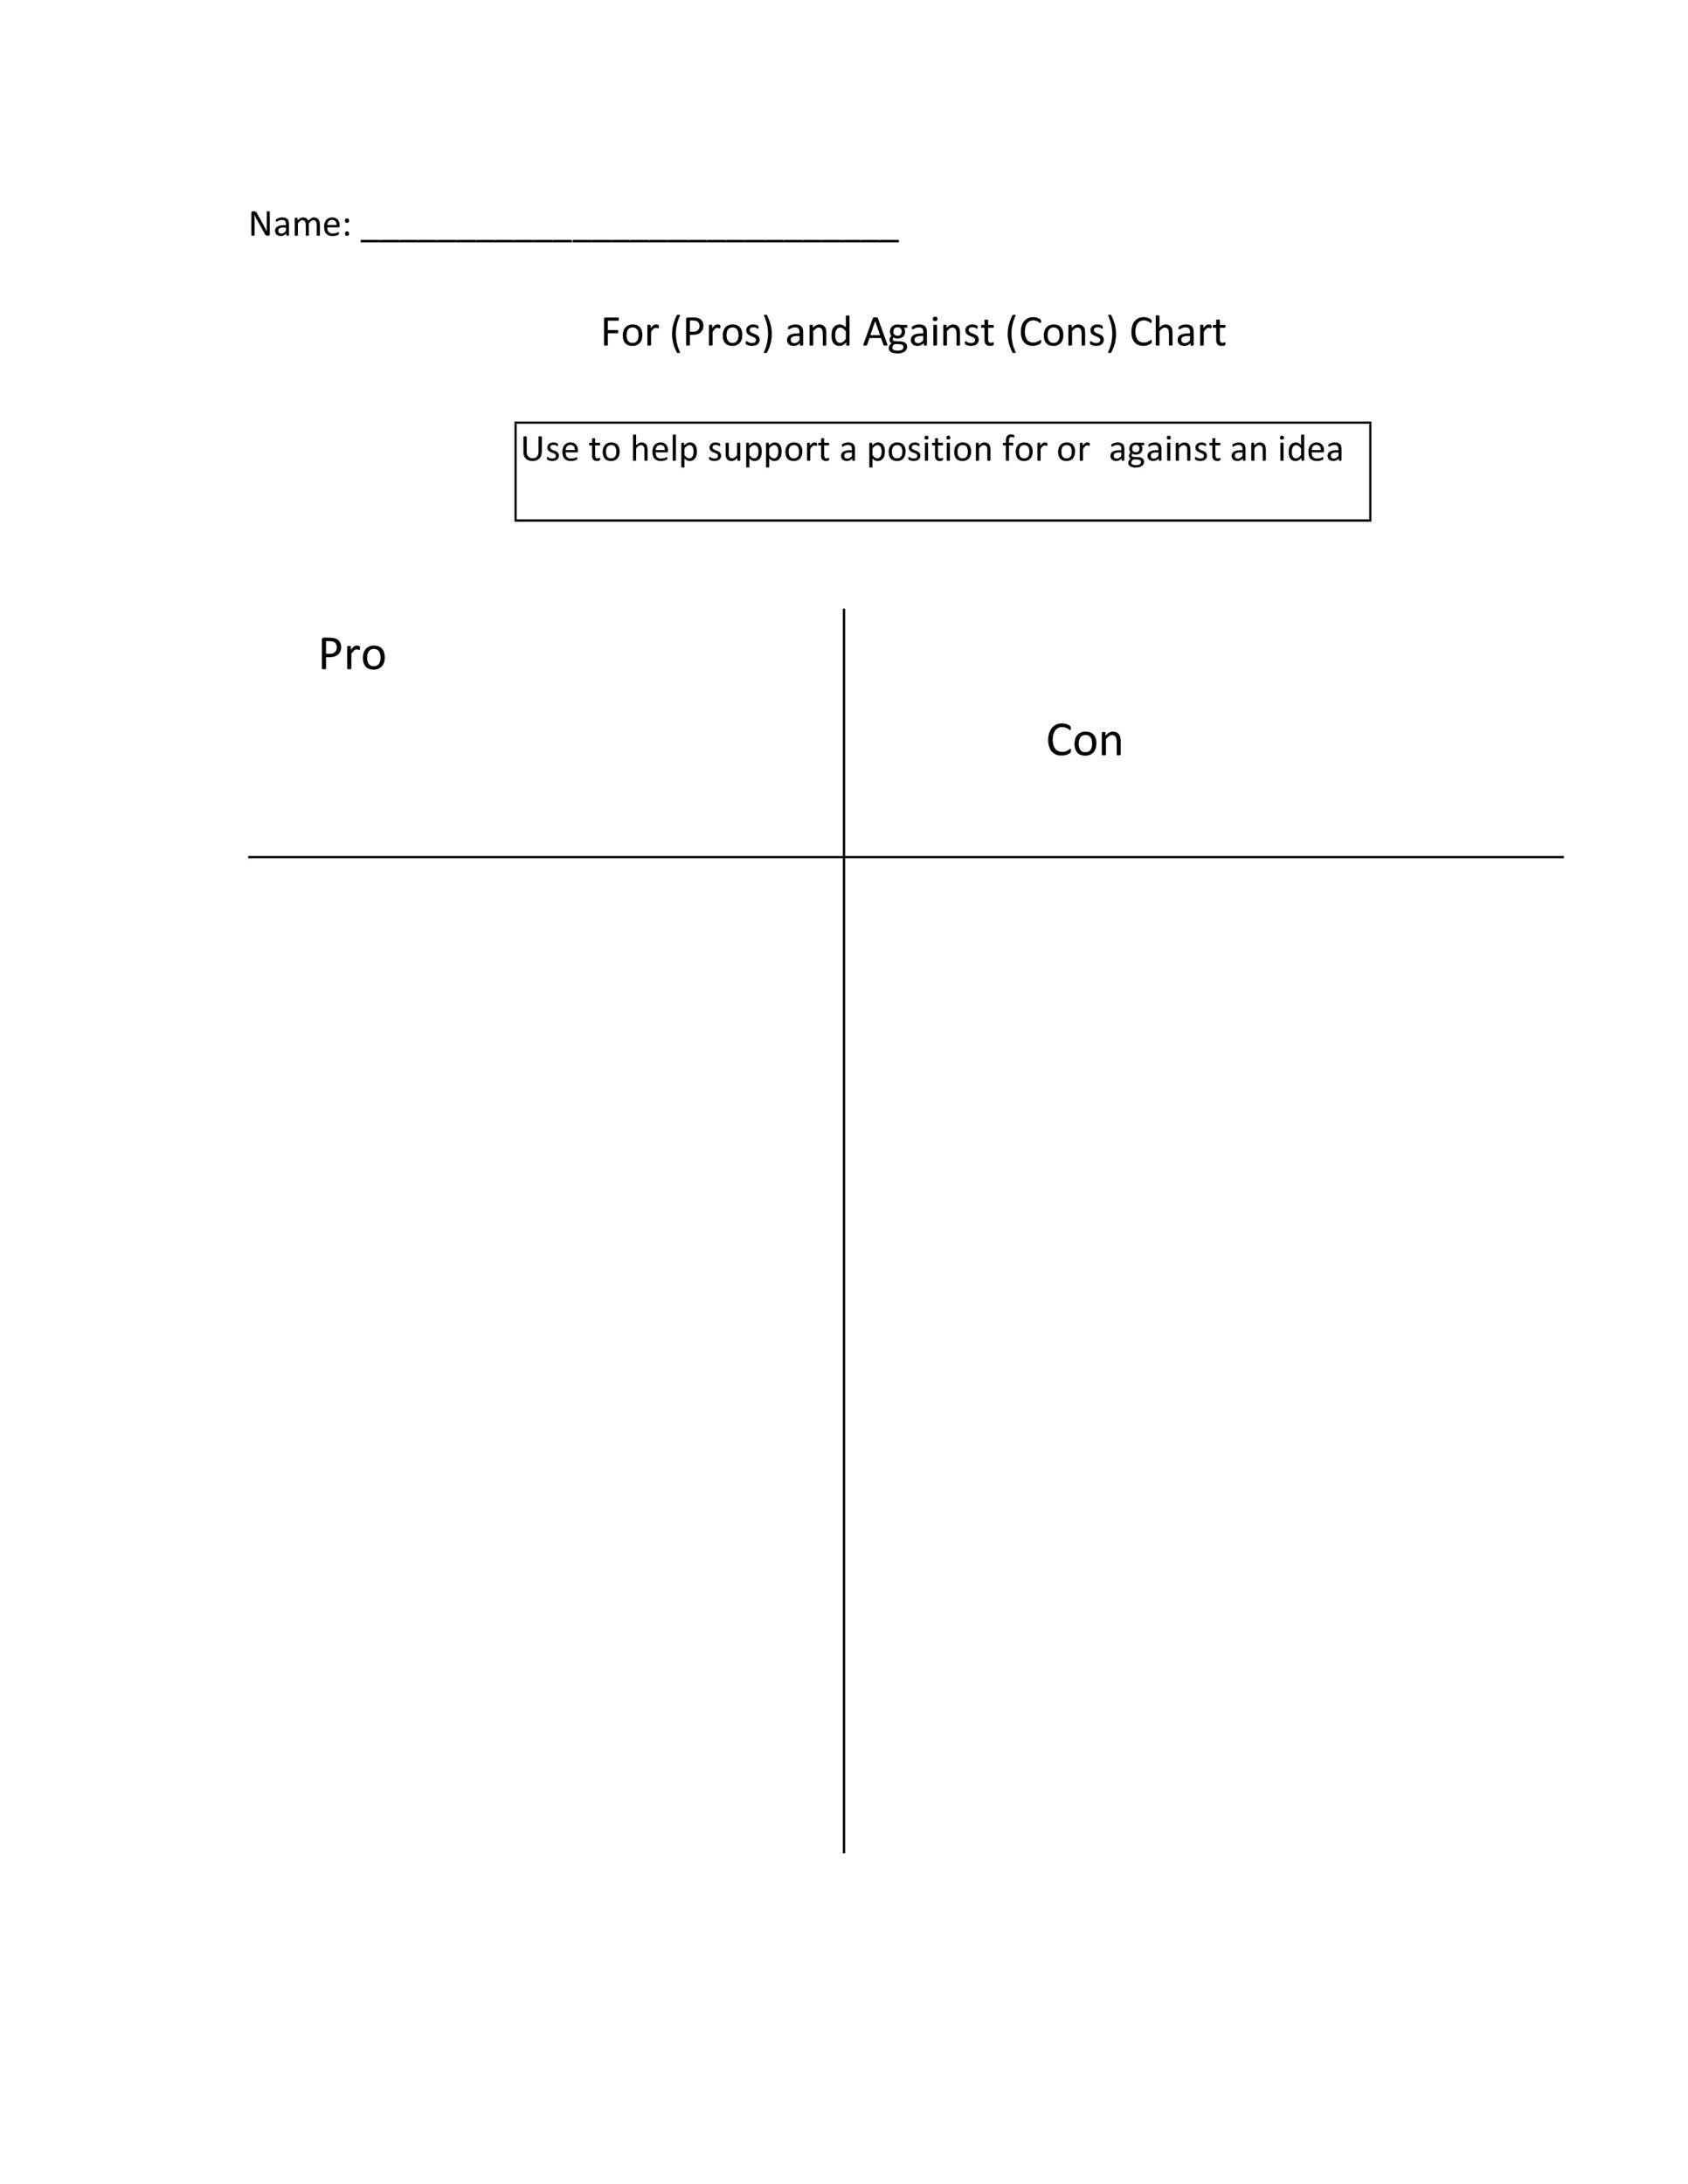 pros and cons worksheet template - Canasbergdorfbib